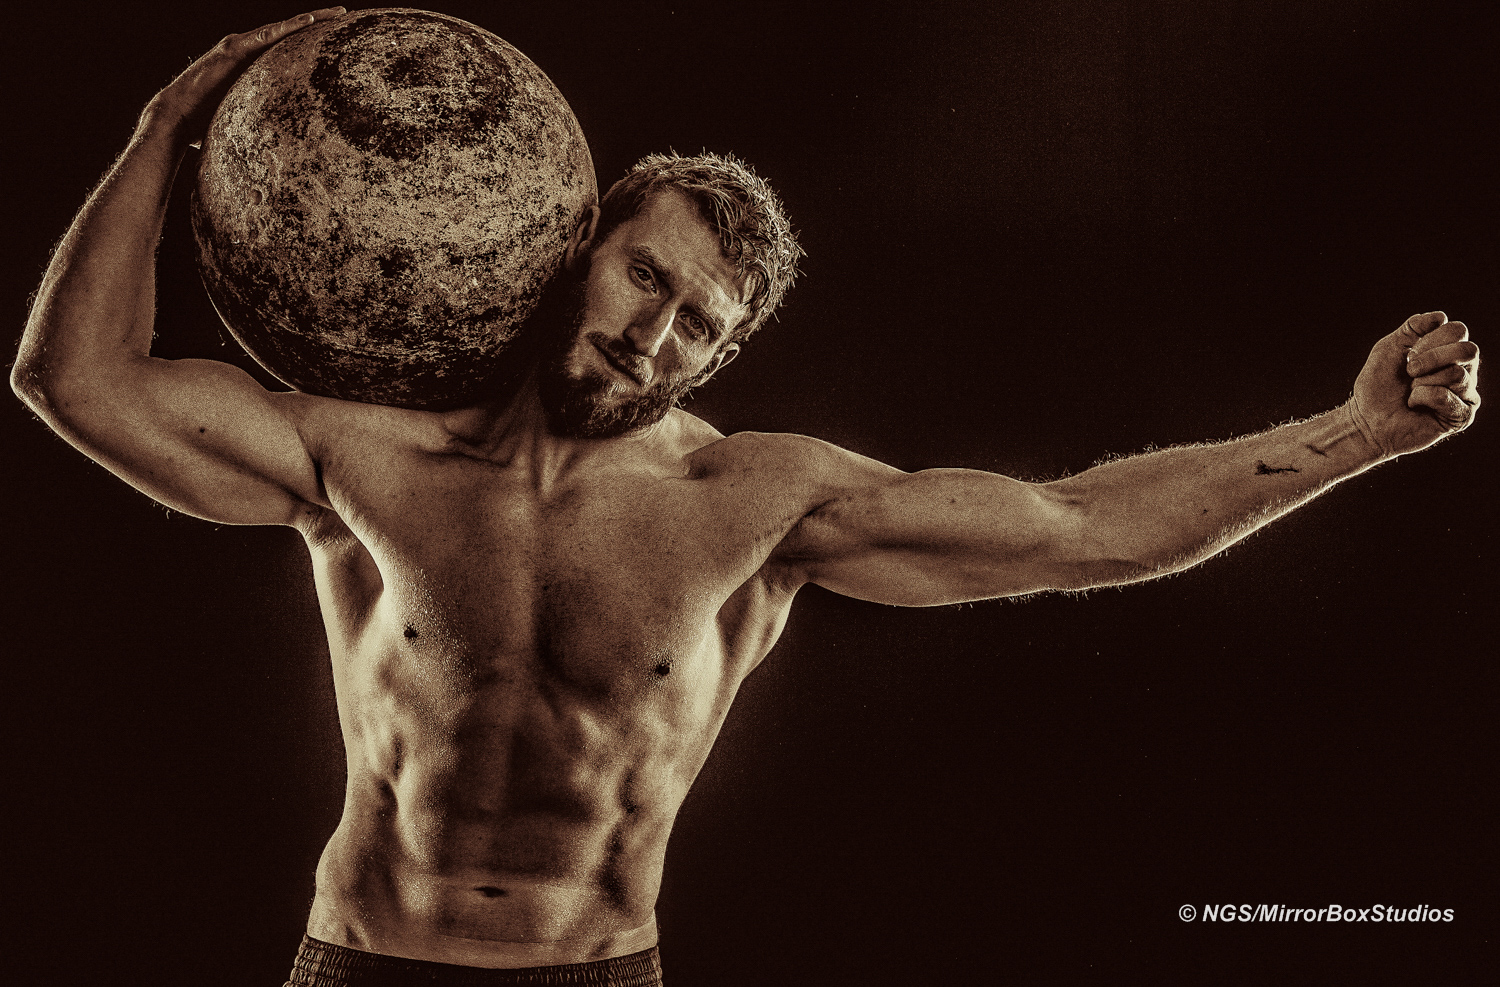 Scott_Poulter_Gym_Shoot__02_01_17__16124_©NGS-MBS